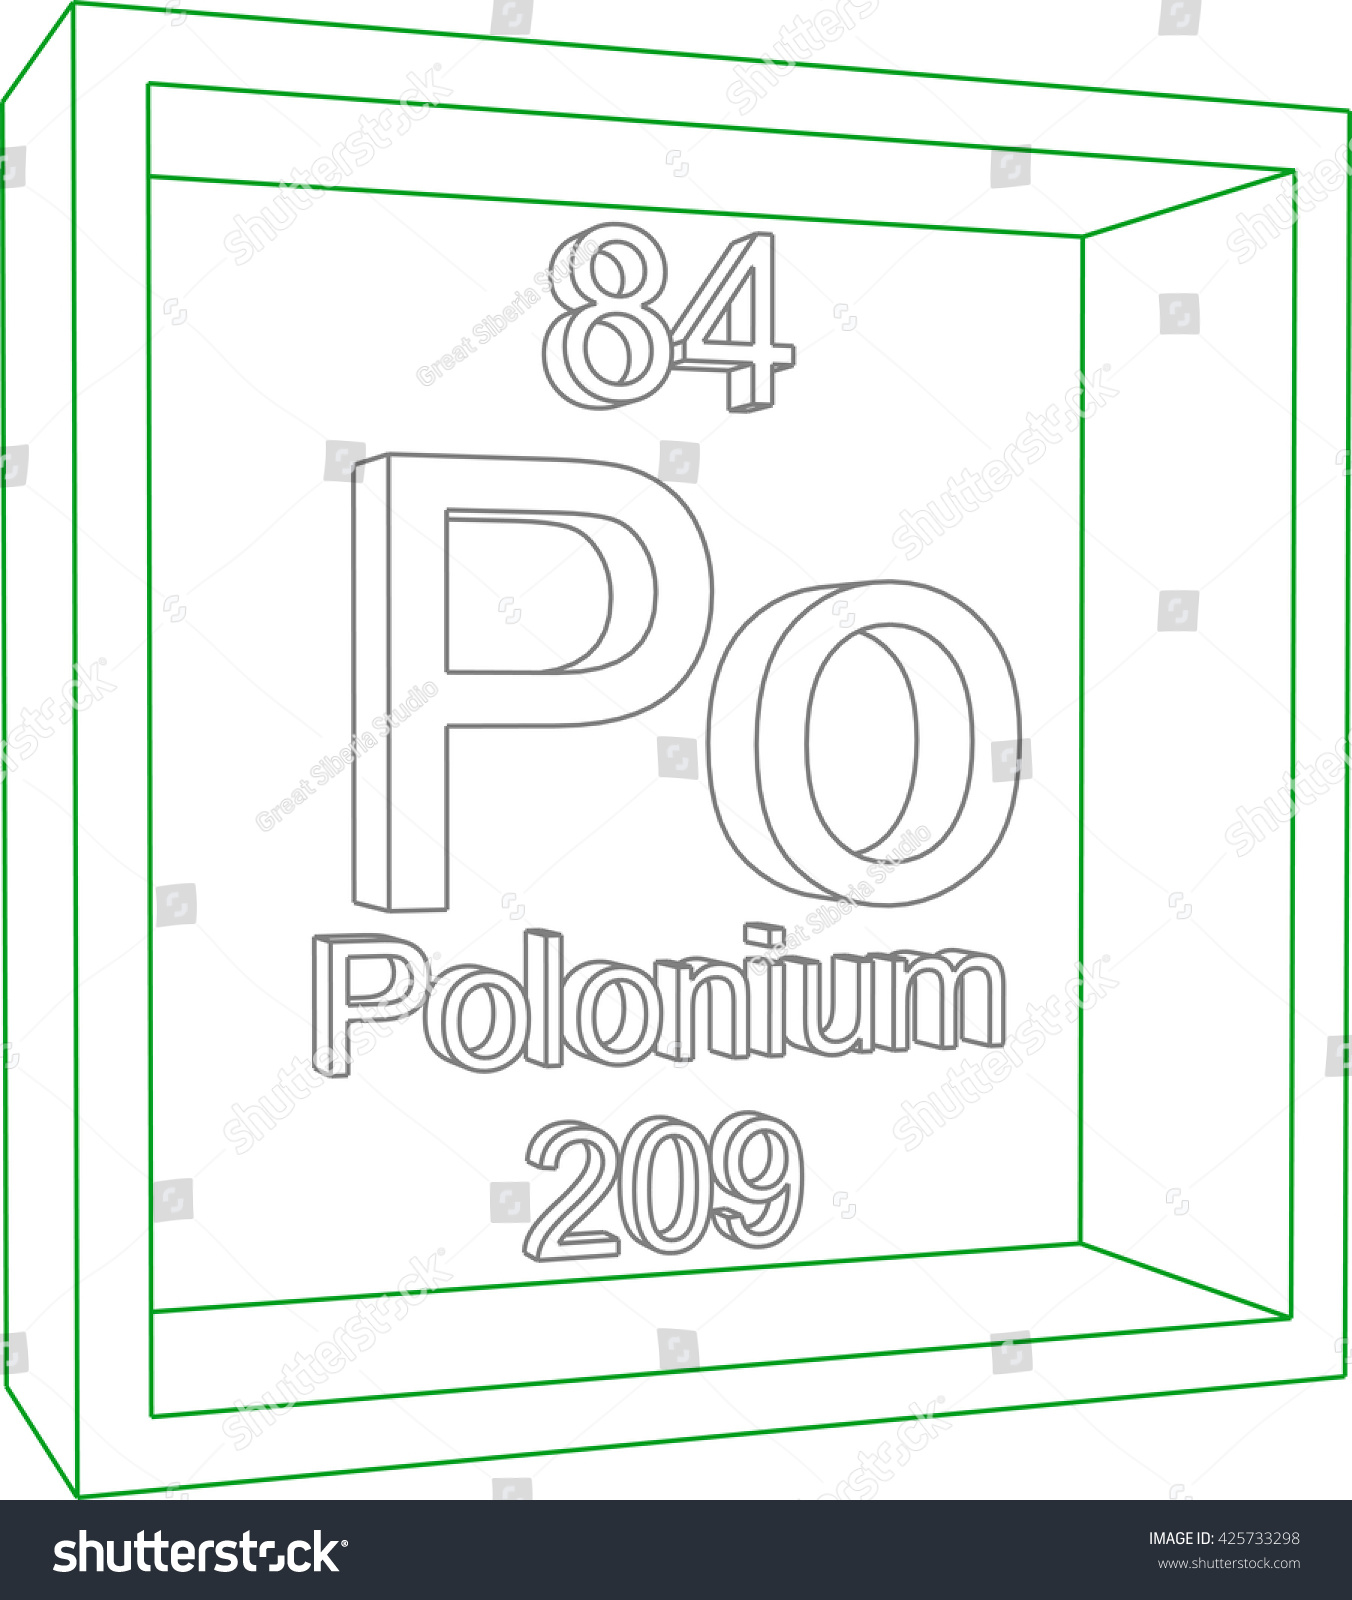 Periodic table polonium choice image periodic table images periodic table polonium choice image periodic table images po element periodic table choice image periodic table gamestrikefo Gallery